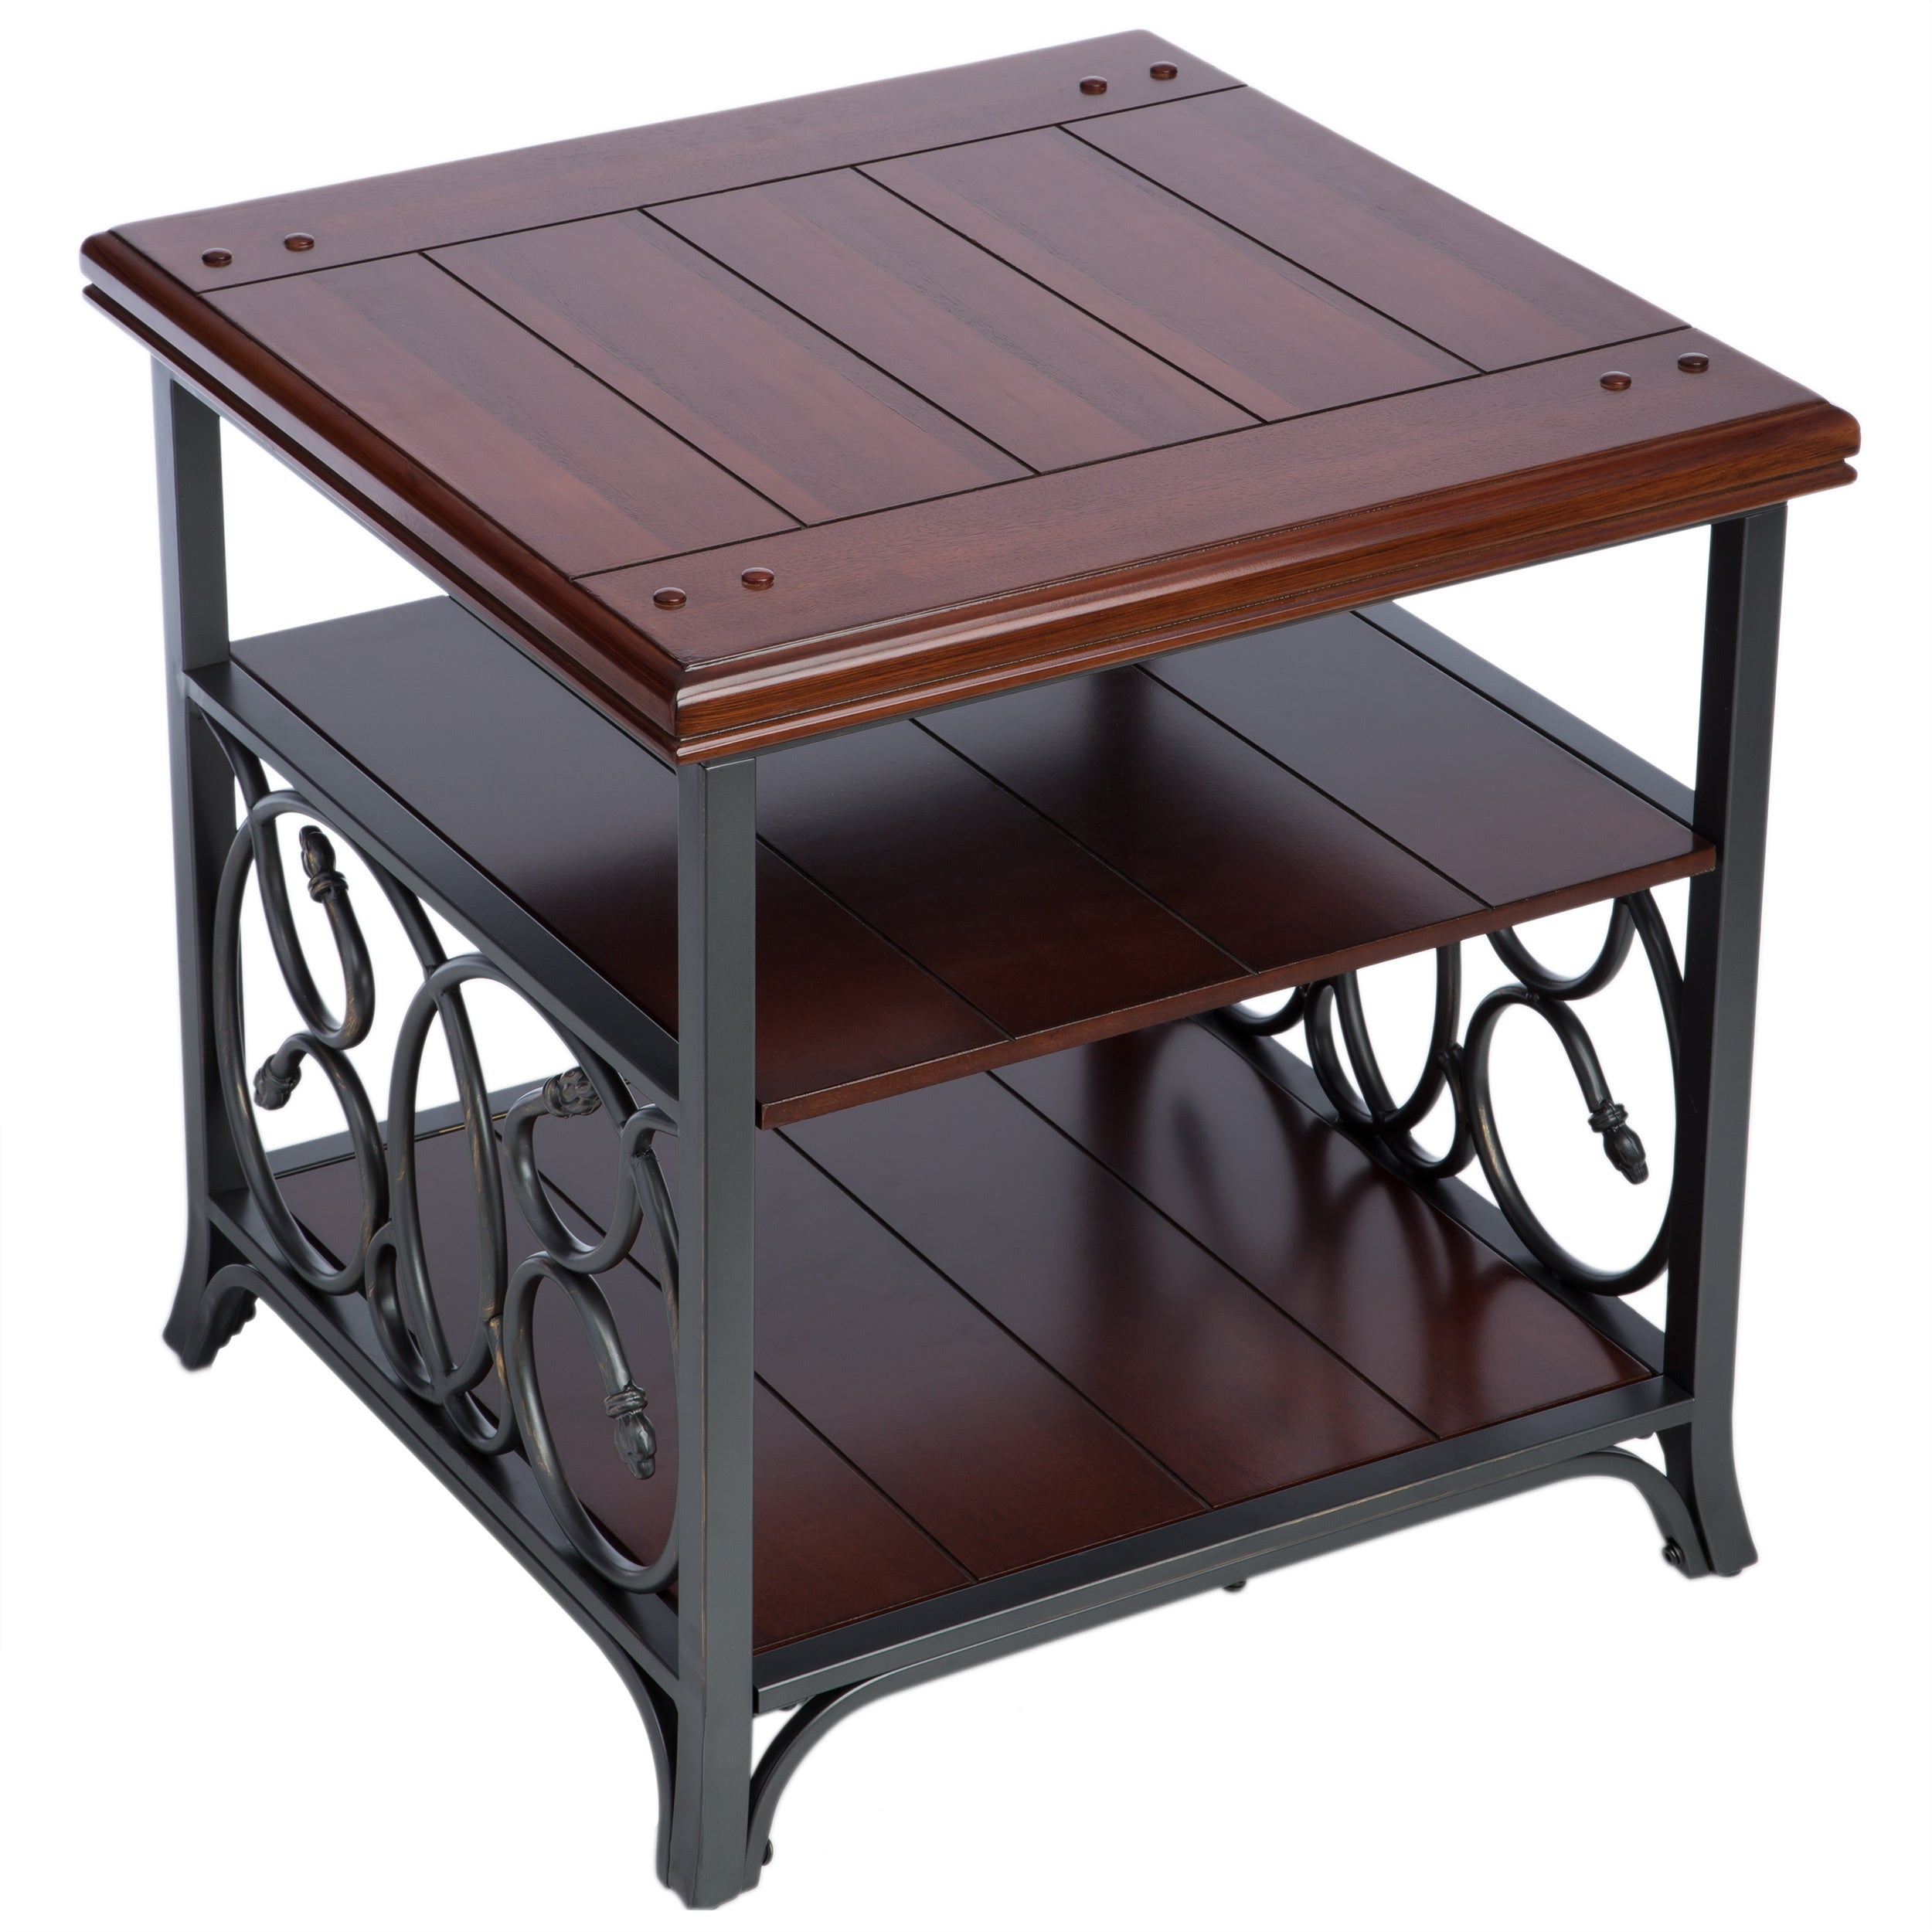 Scrolled Metal And Wood End Table Free Shipping Today 2536113